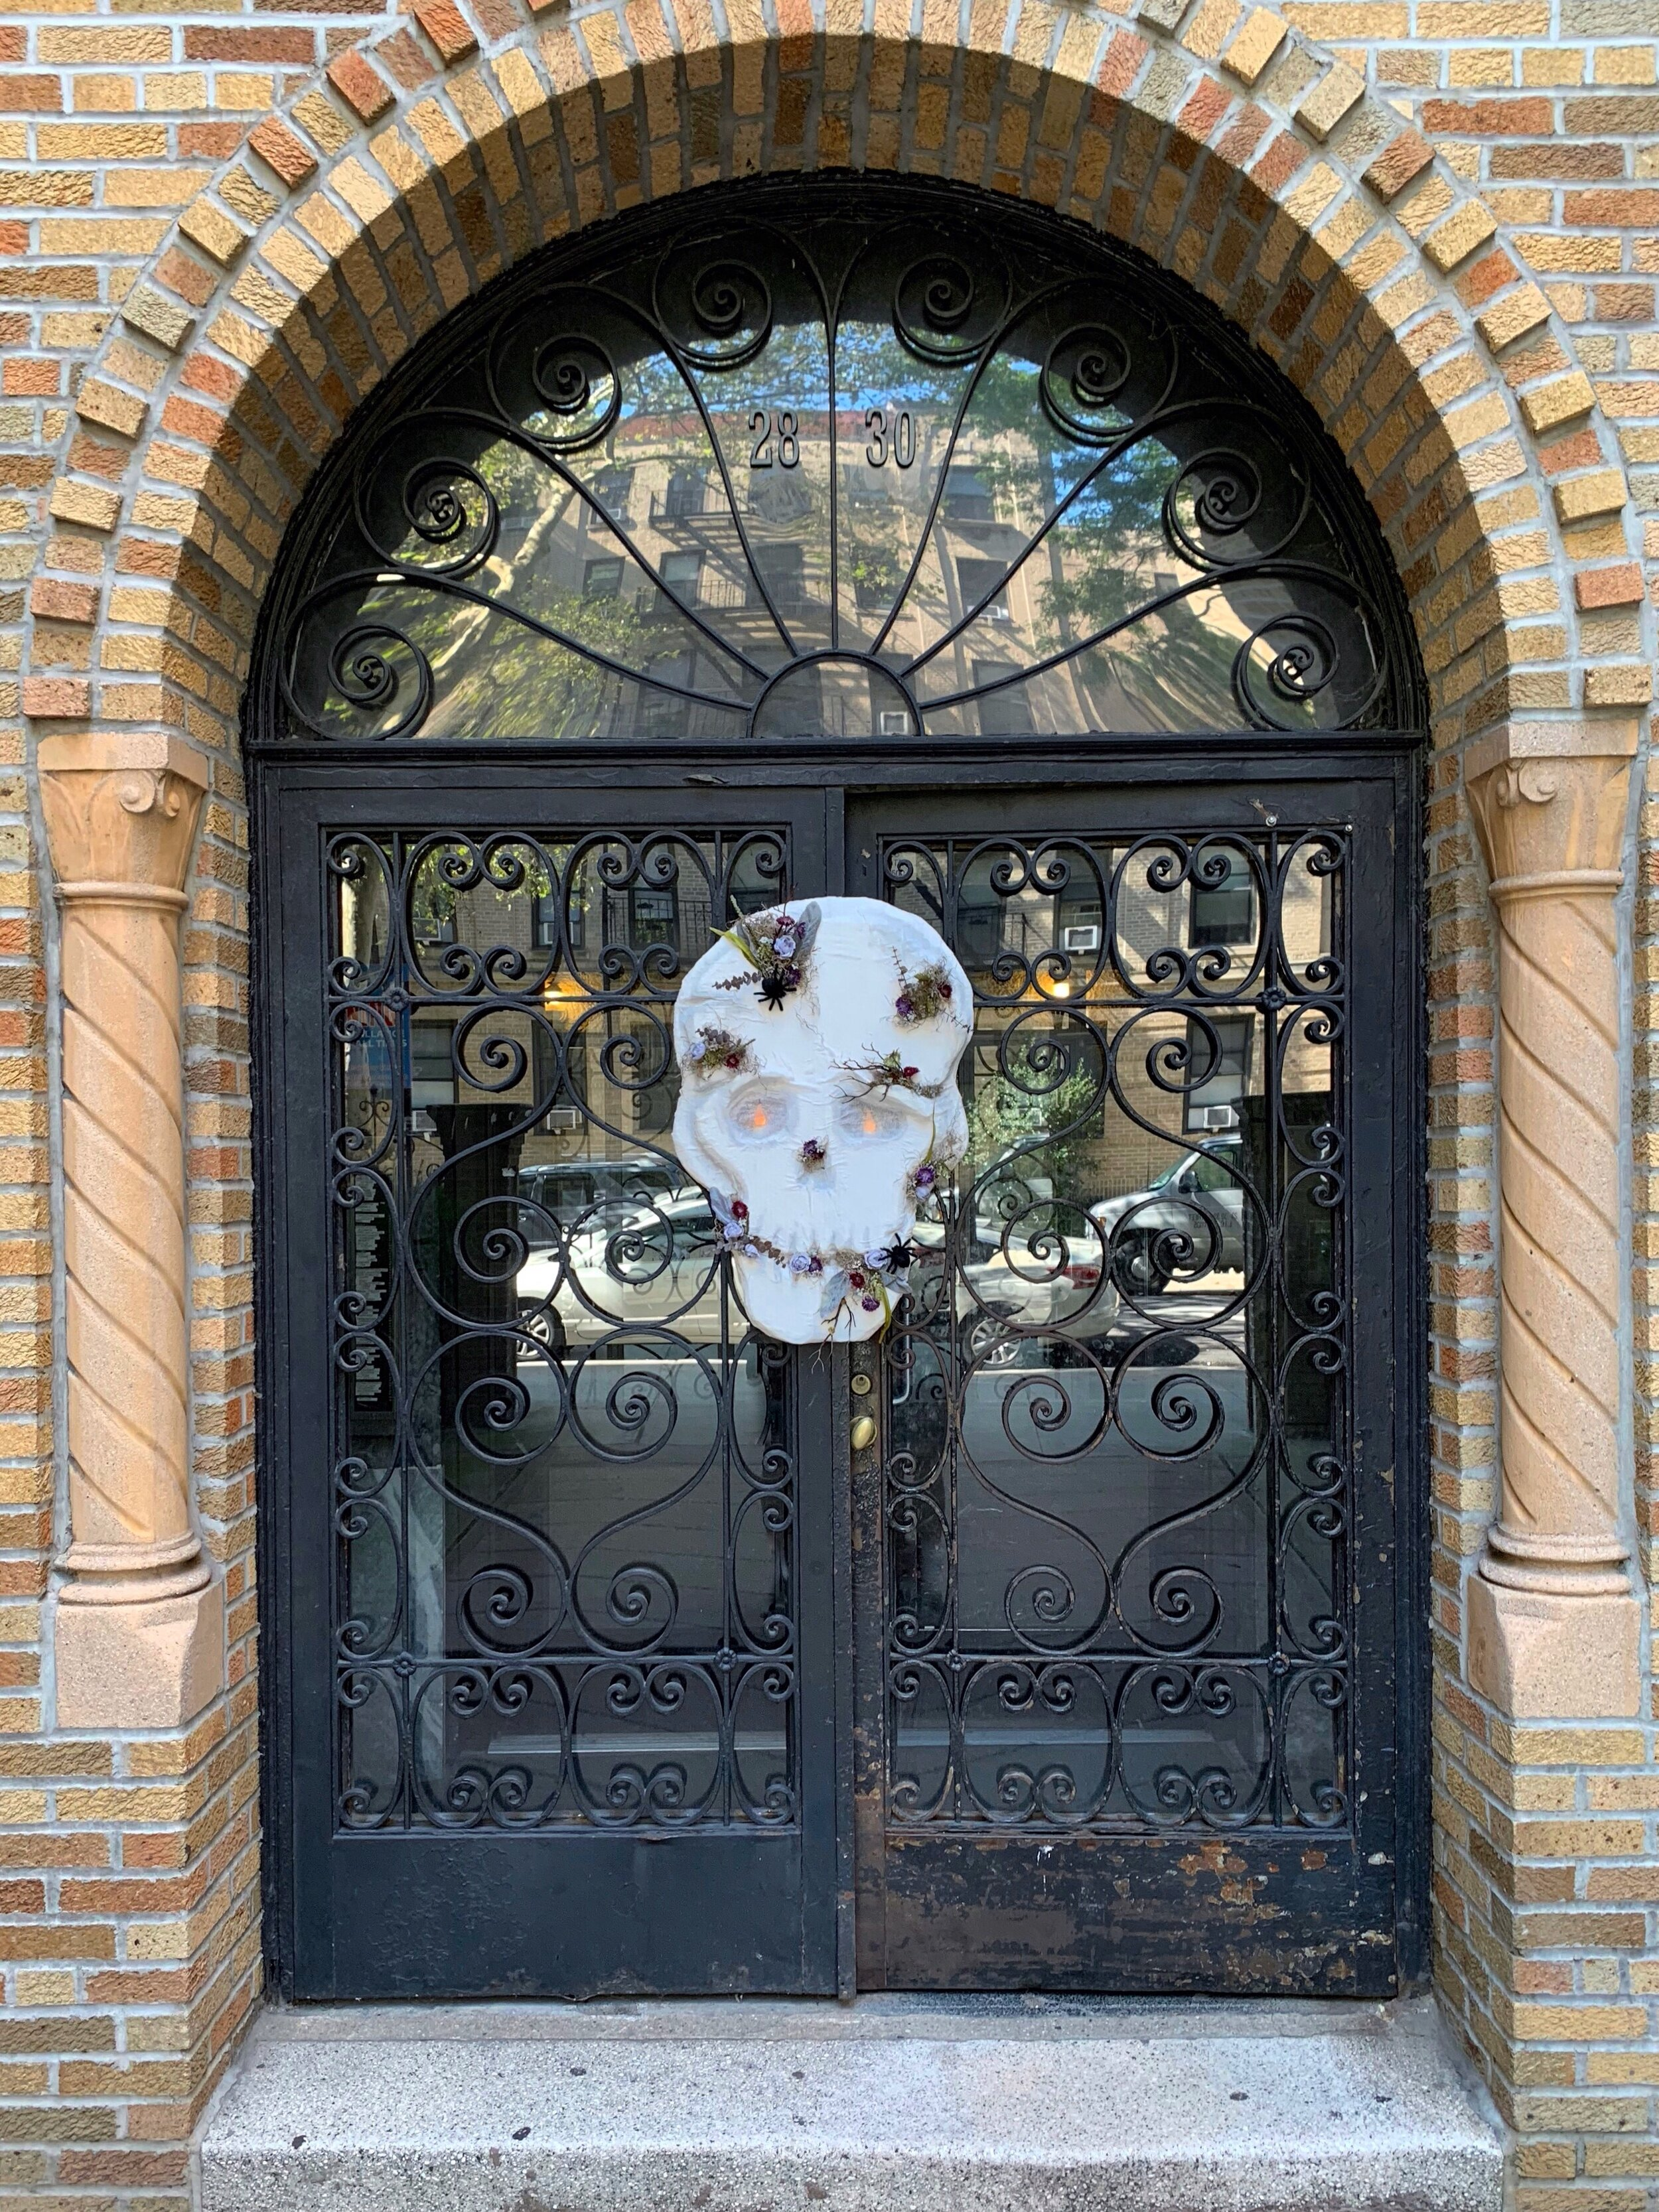 Large Hanging Halloween Floral Skull DIY - Create a larger than life one of a kind Halloweendecoration using upcylced materials!  #vintagehalloween #halloweendiy #hauntedhouse #creepy #spooky #upcycledcrafts #halloweendecor #booityourself #craftylumberjacks #halloweeneveryday #halloweendoordecorations #halloweenwreath